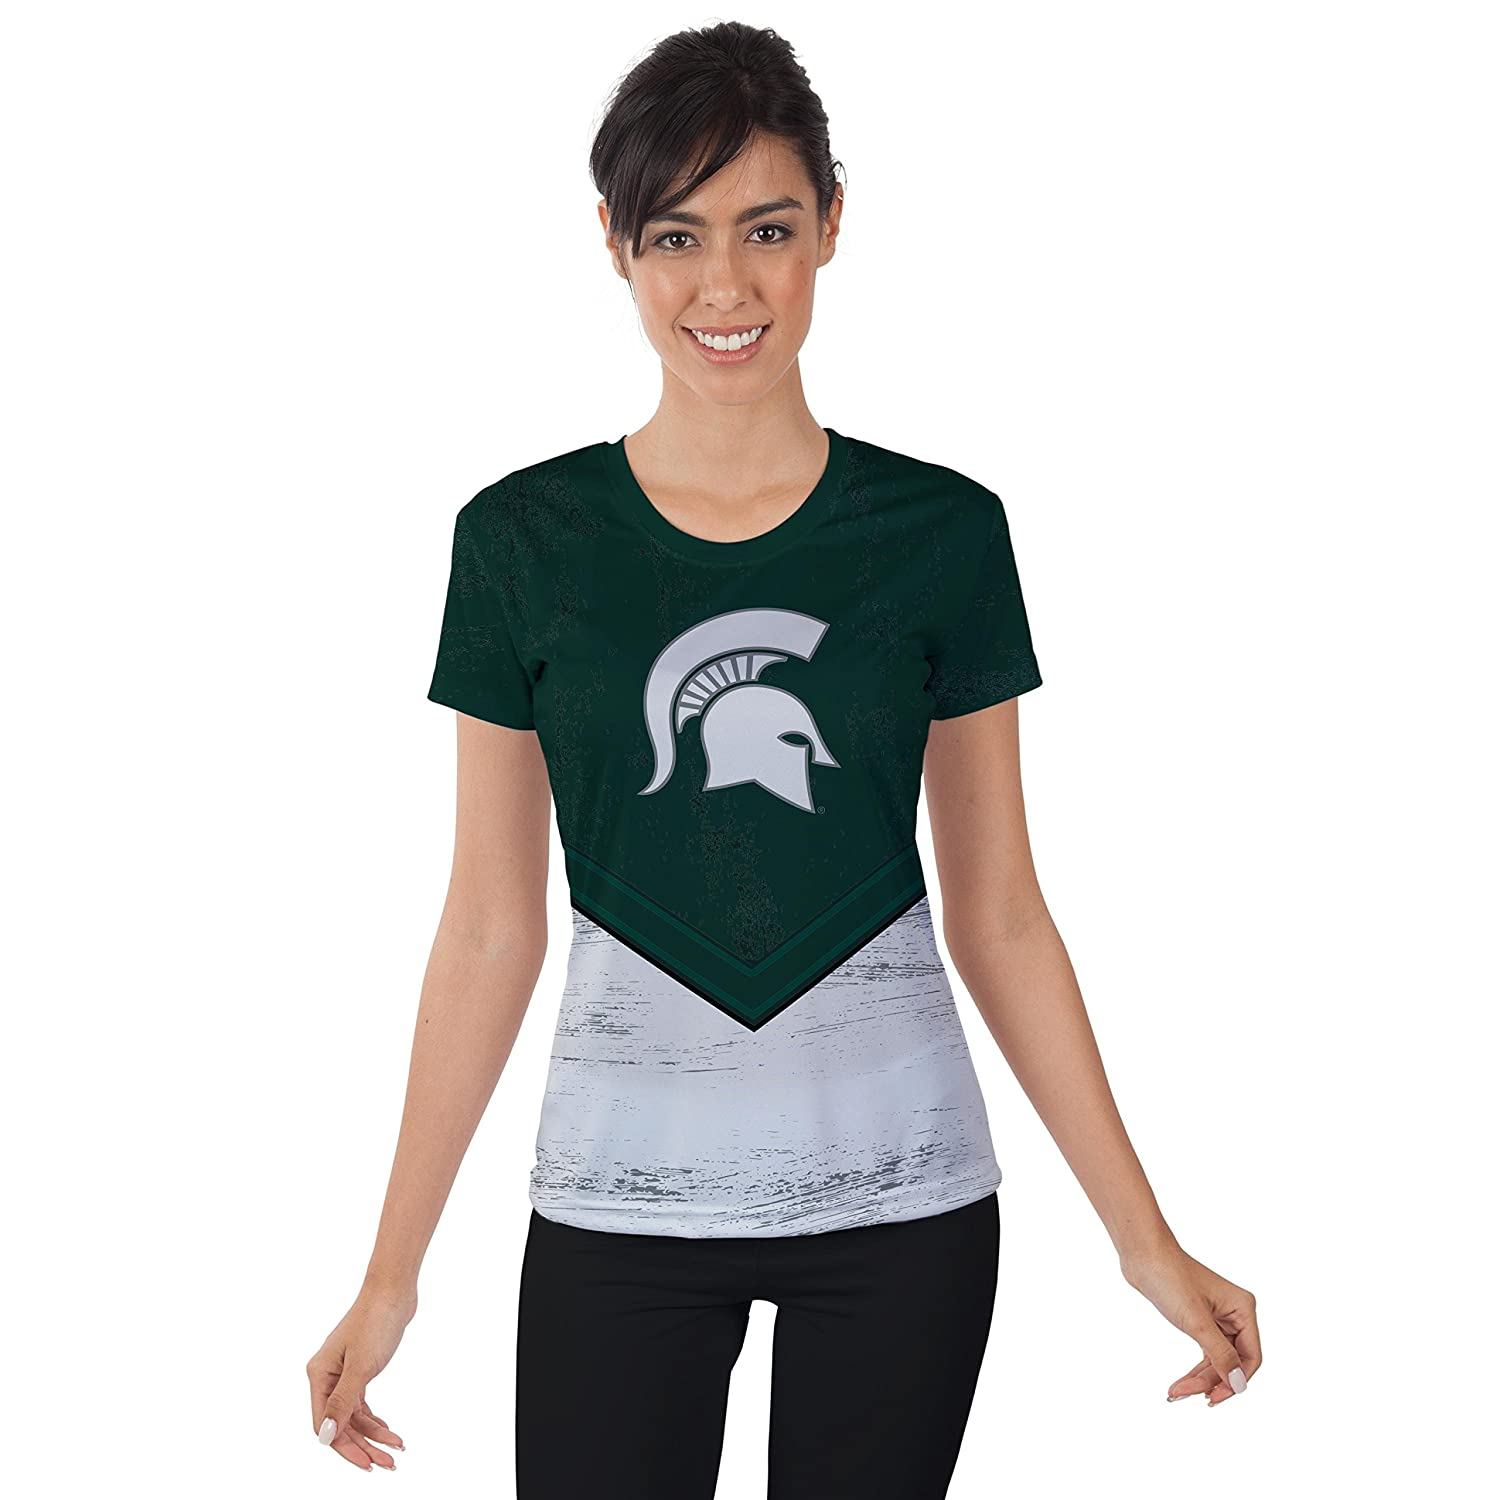 Michigan State University Spartans Womens Short Sleeve Shirt Trailblazer Design (Small)